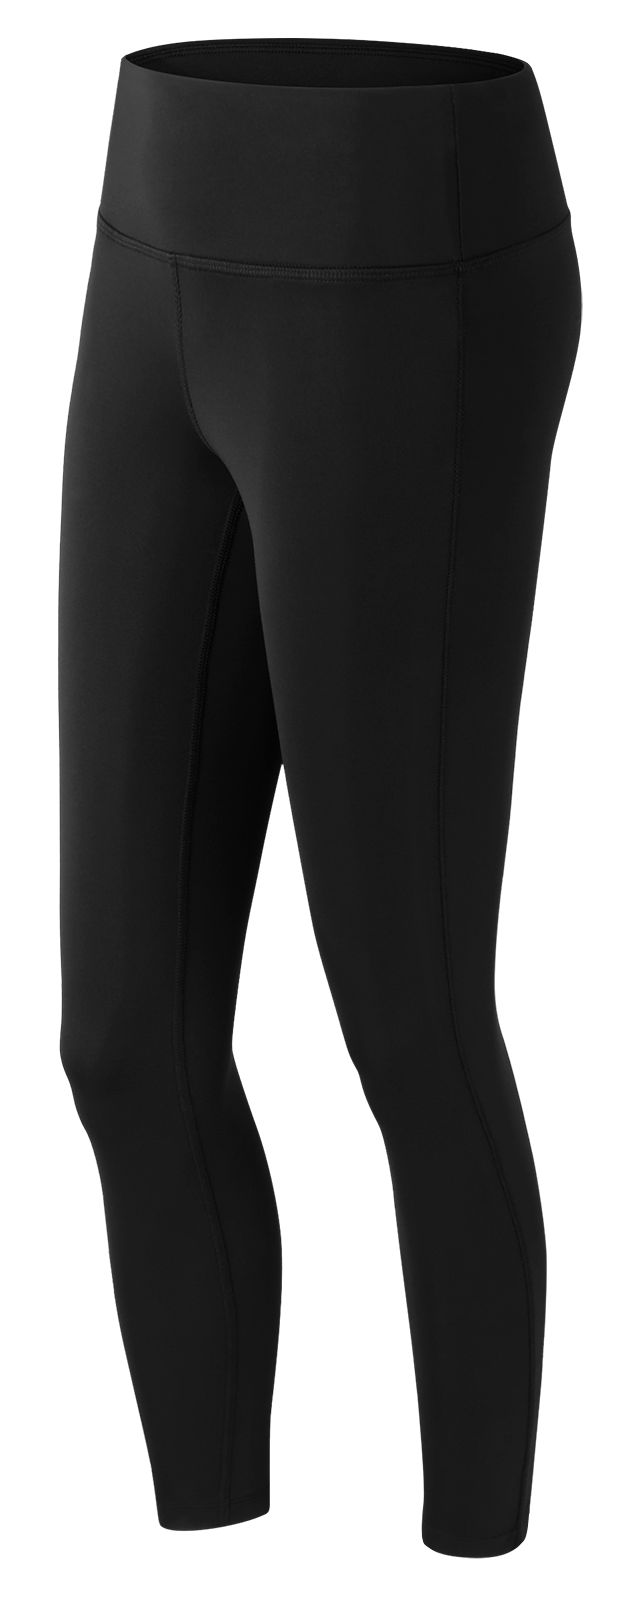 Women's Poly Span Tight